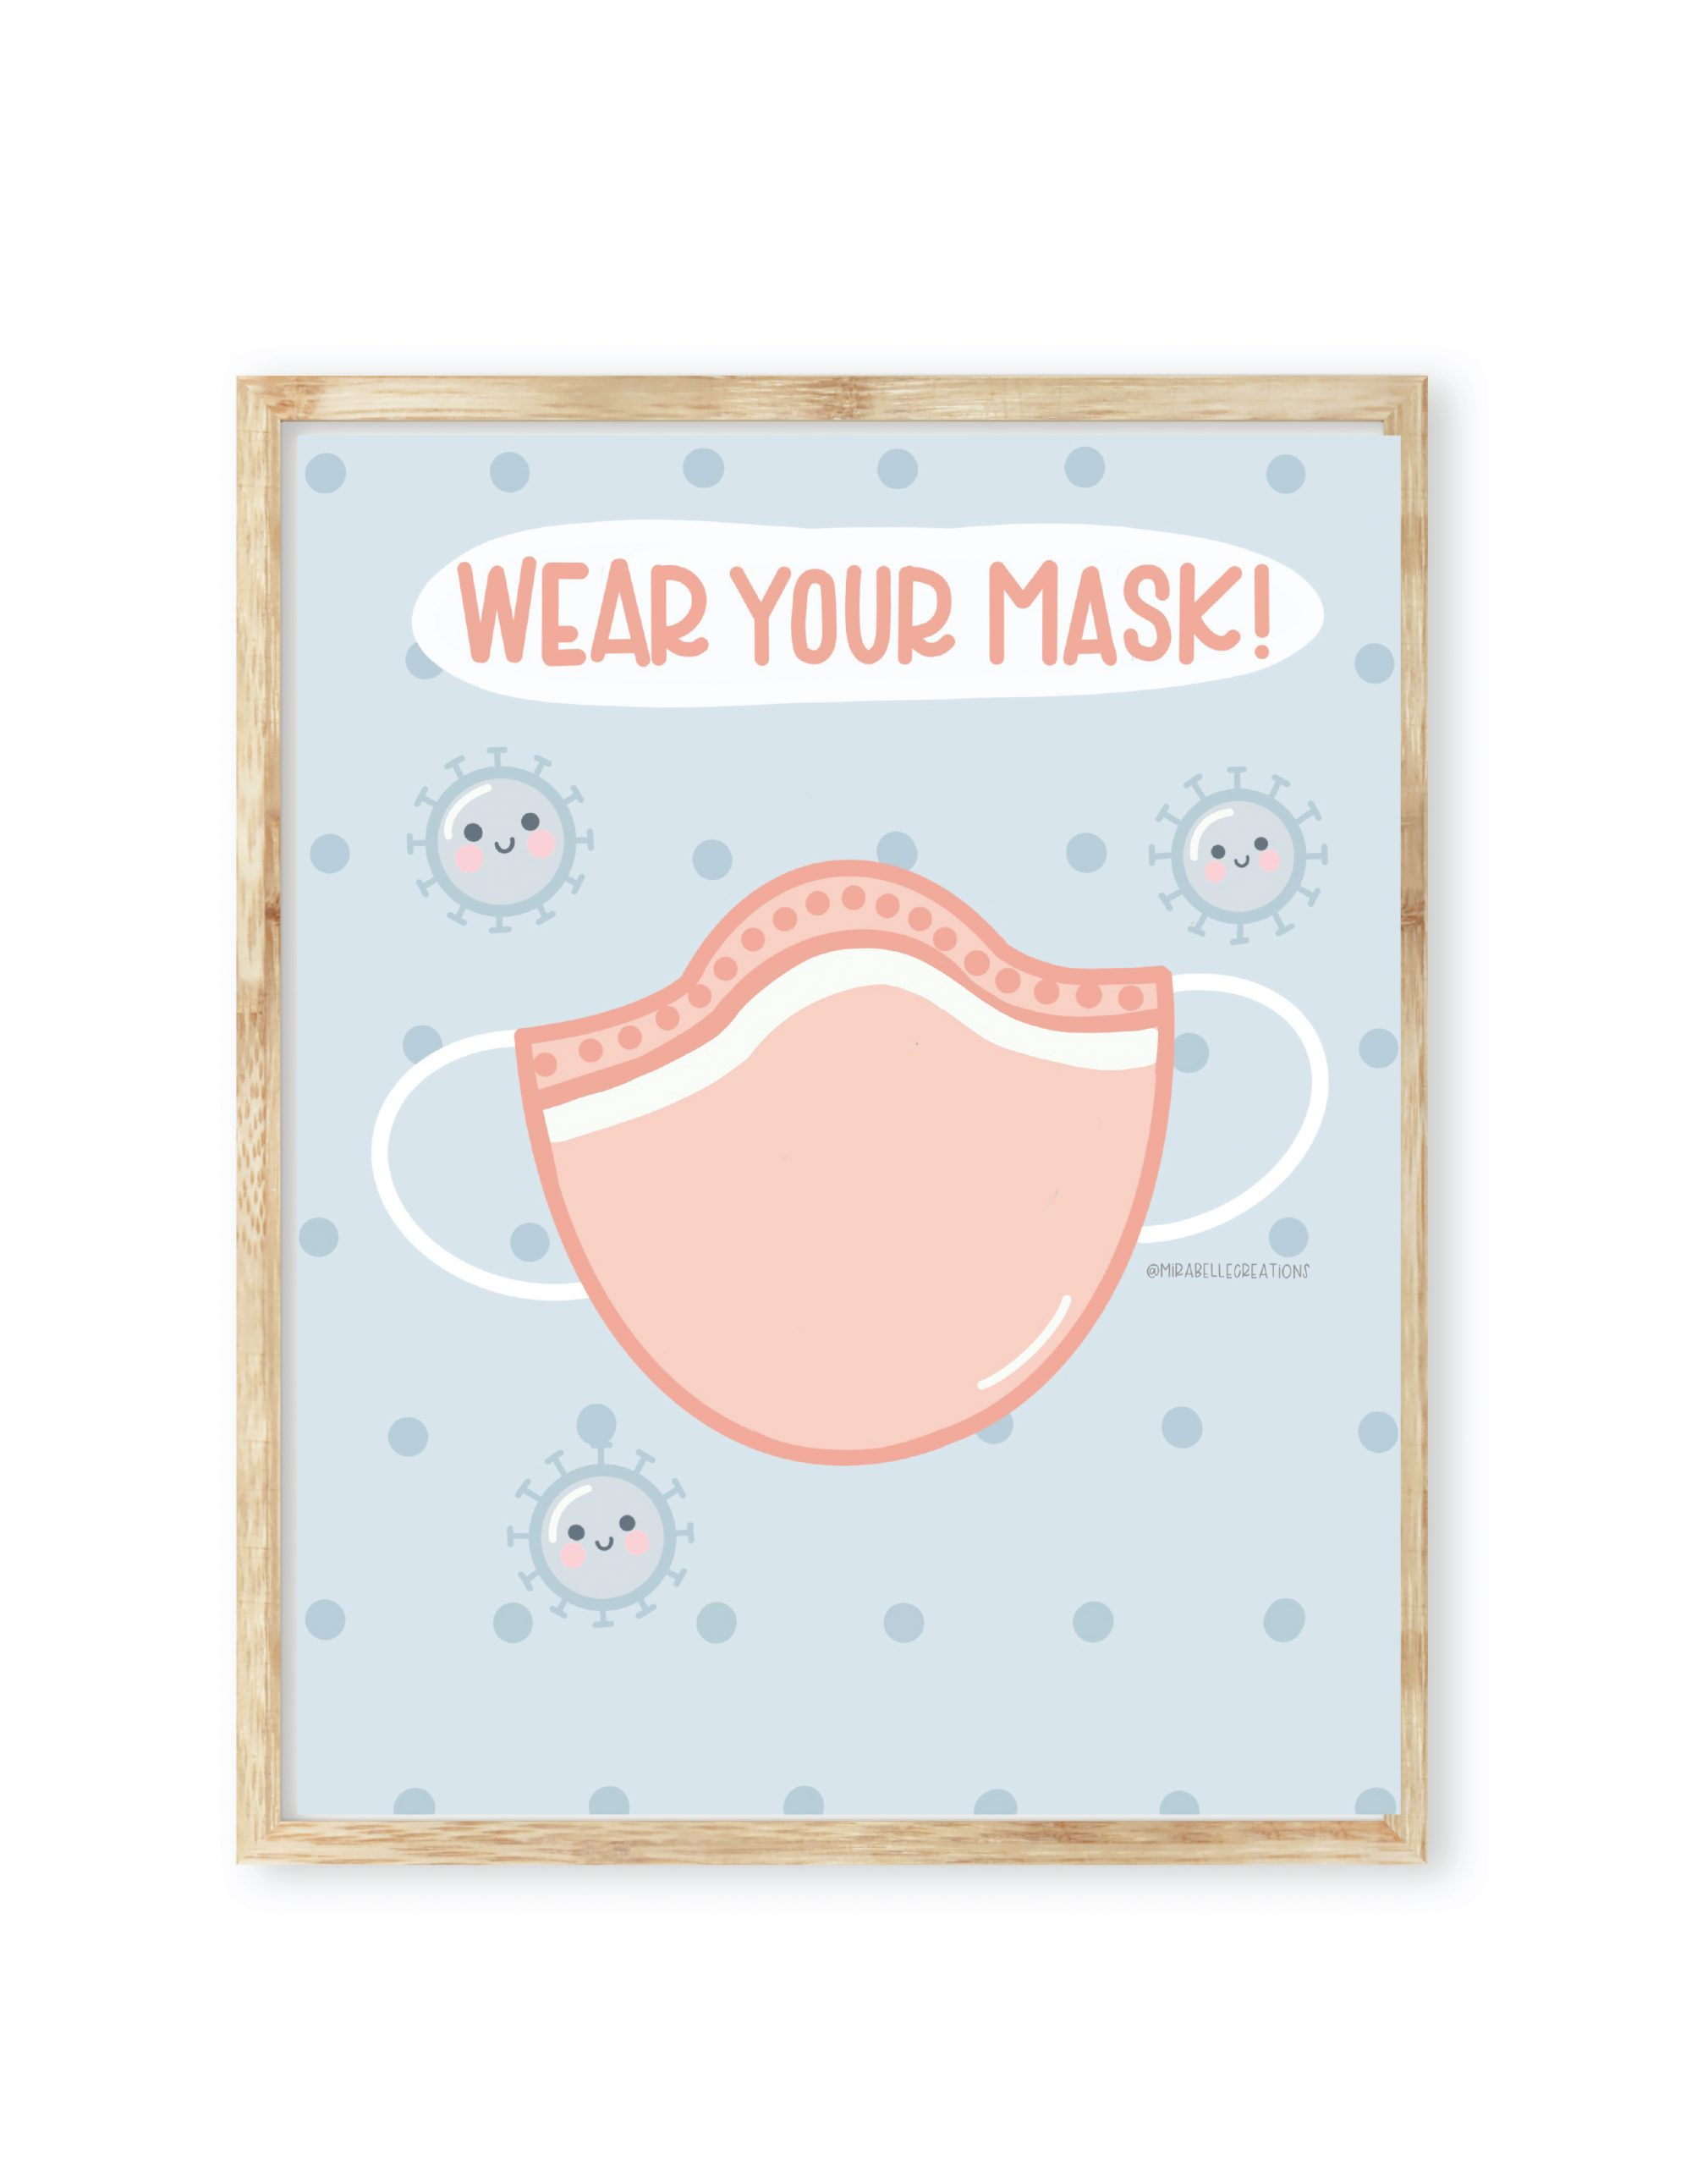 Wear Your Mask free printable artwork by Mirabelle Creations